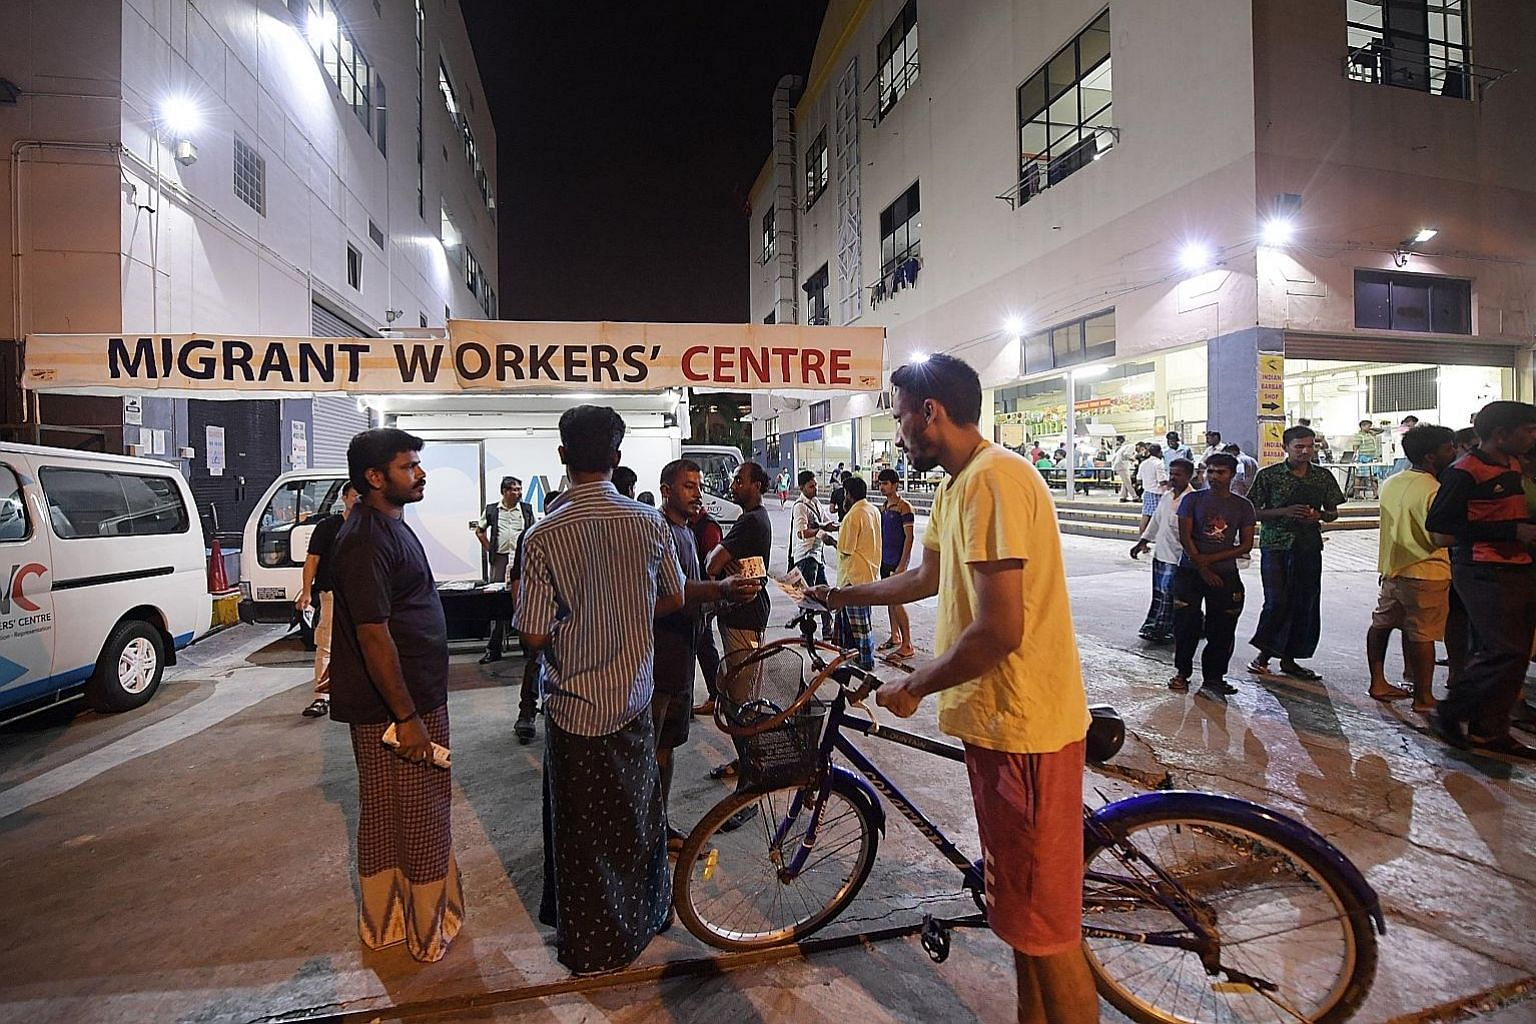 Mr Raja Ramasamy Raj (third from left), 39, and Mr Jeyabal Simeon (left), 32, both volunteers with the Migrant Workers' Centre, talking to migrant workers in Tuas View Square. The centre has conducted outreach to more than 650,000 foreign workers sin